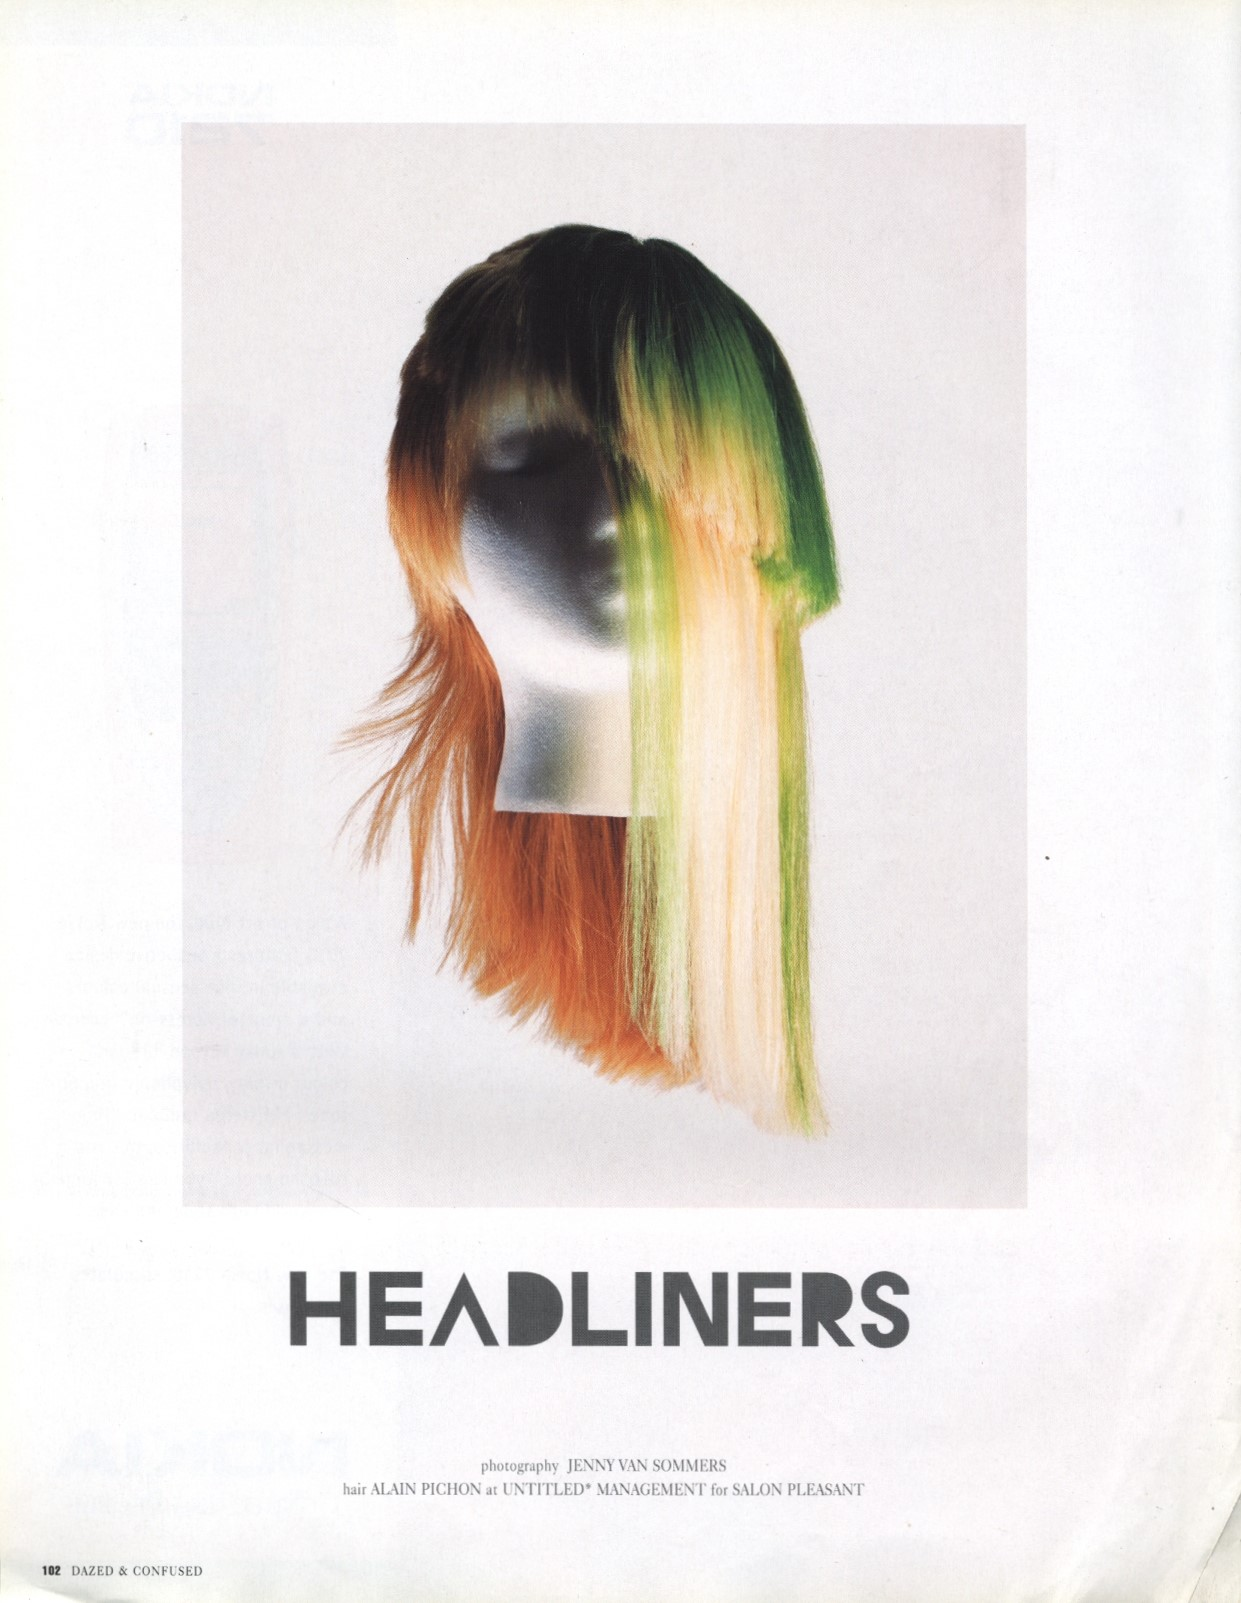 headliners photography jenny van sommers hair alain pichon dazed and confused japan november 2002 1